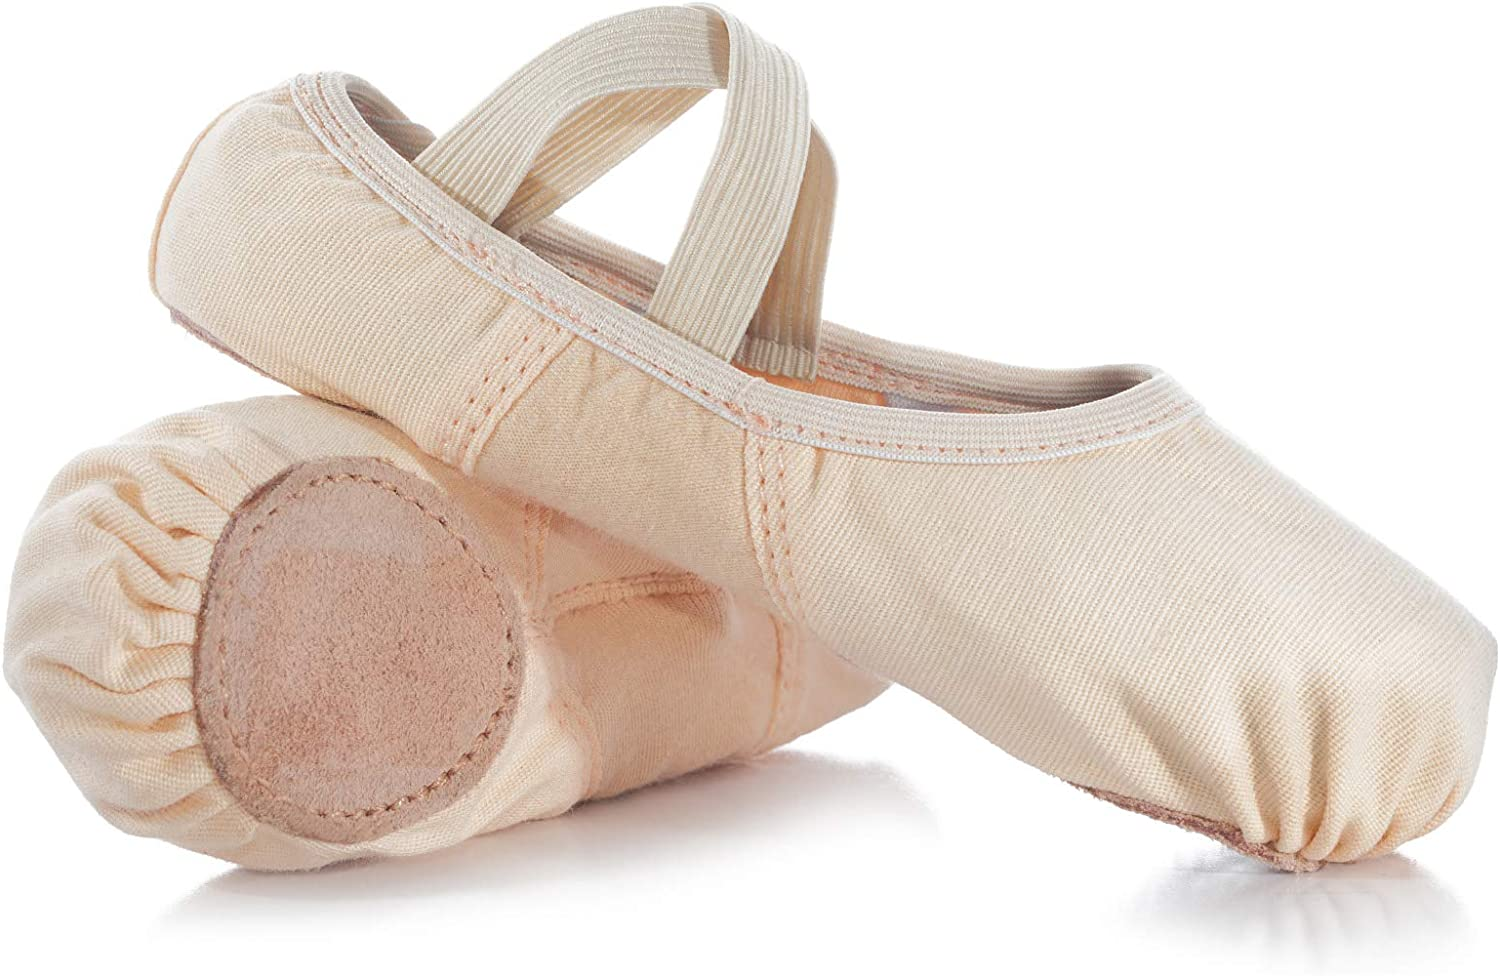 Details about  /RenBut Girls Canvas Slippers with Leather Innersole Arch Ankle and Leather Sup